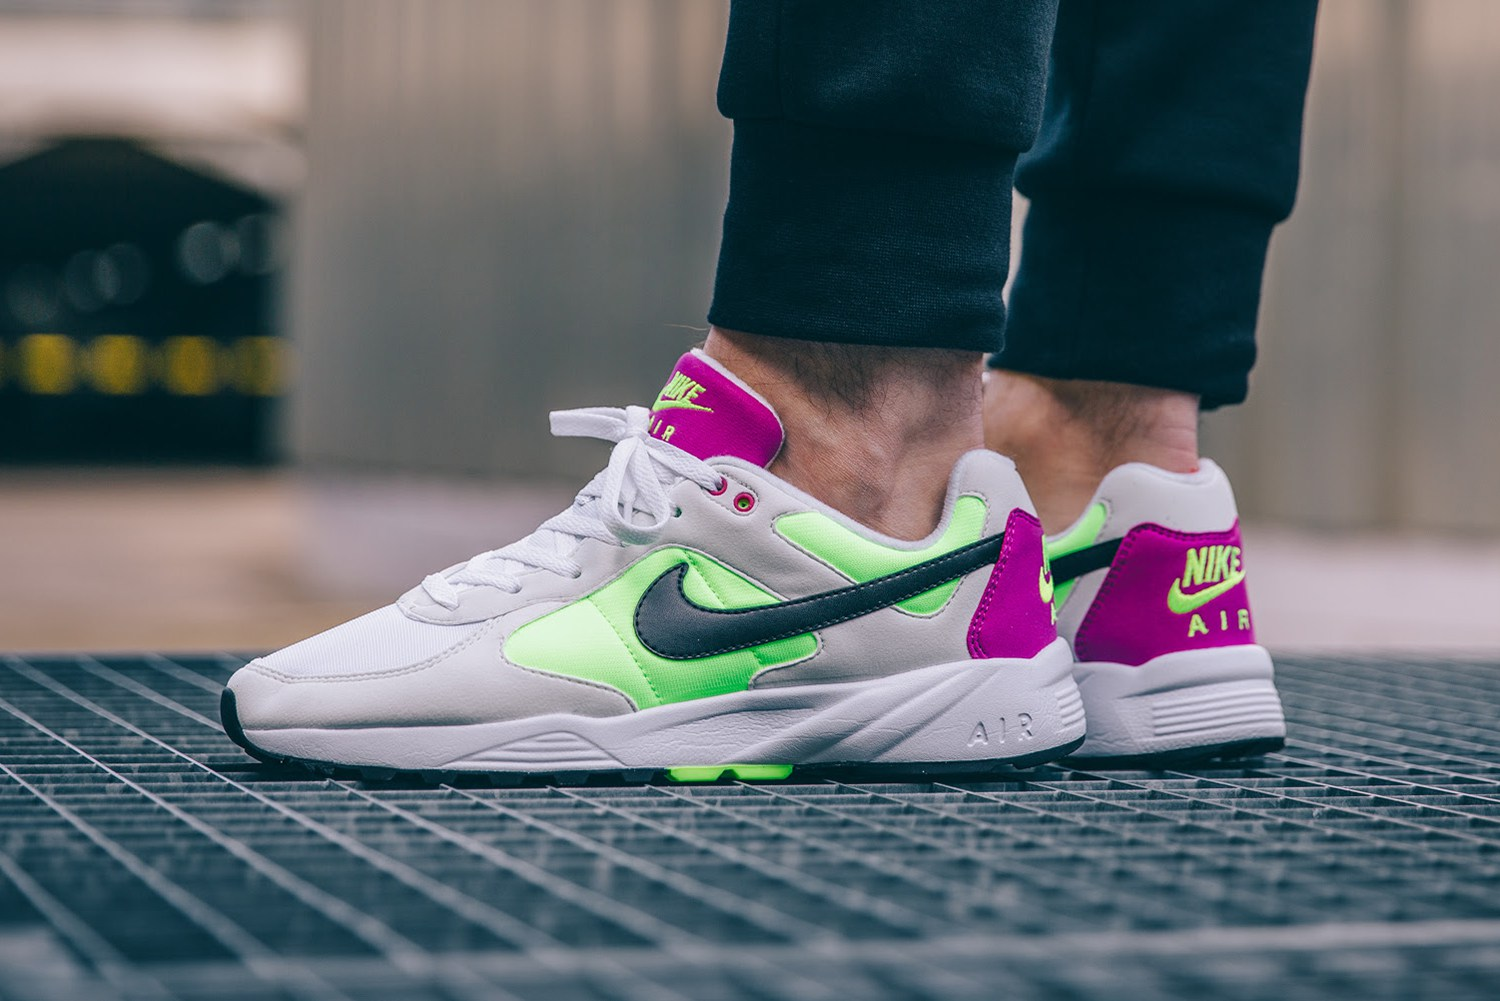 nike-air-icarus-summit-white-black-volt-fuchsia-flash-1